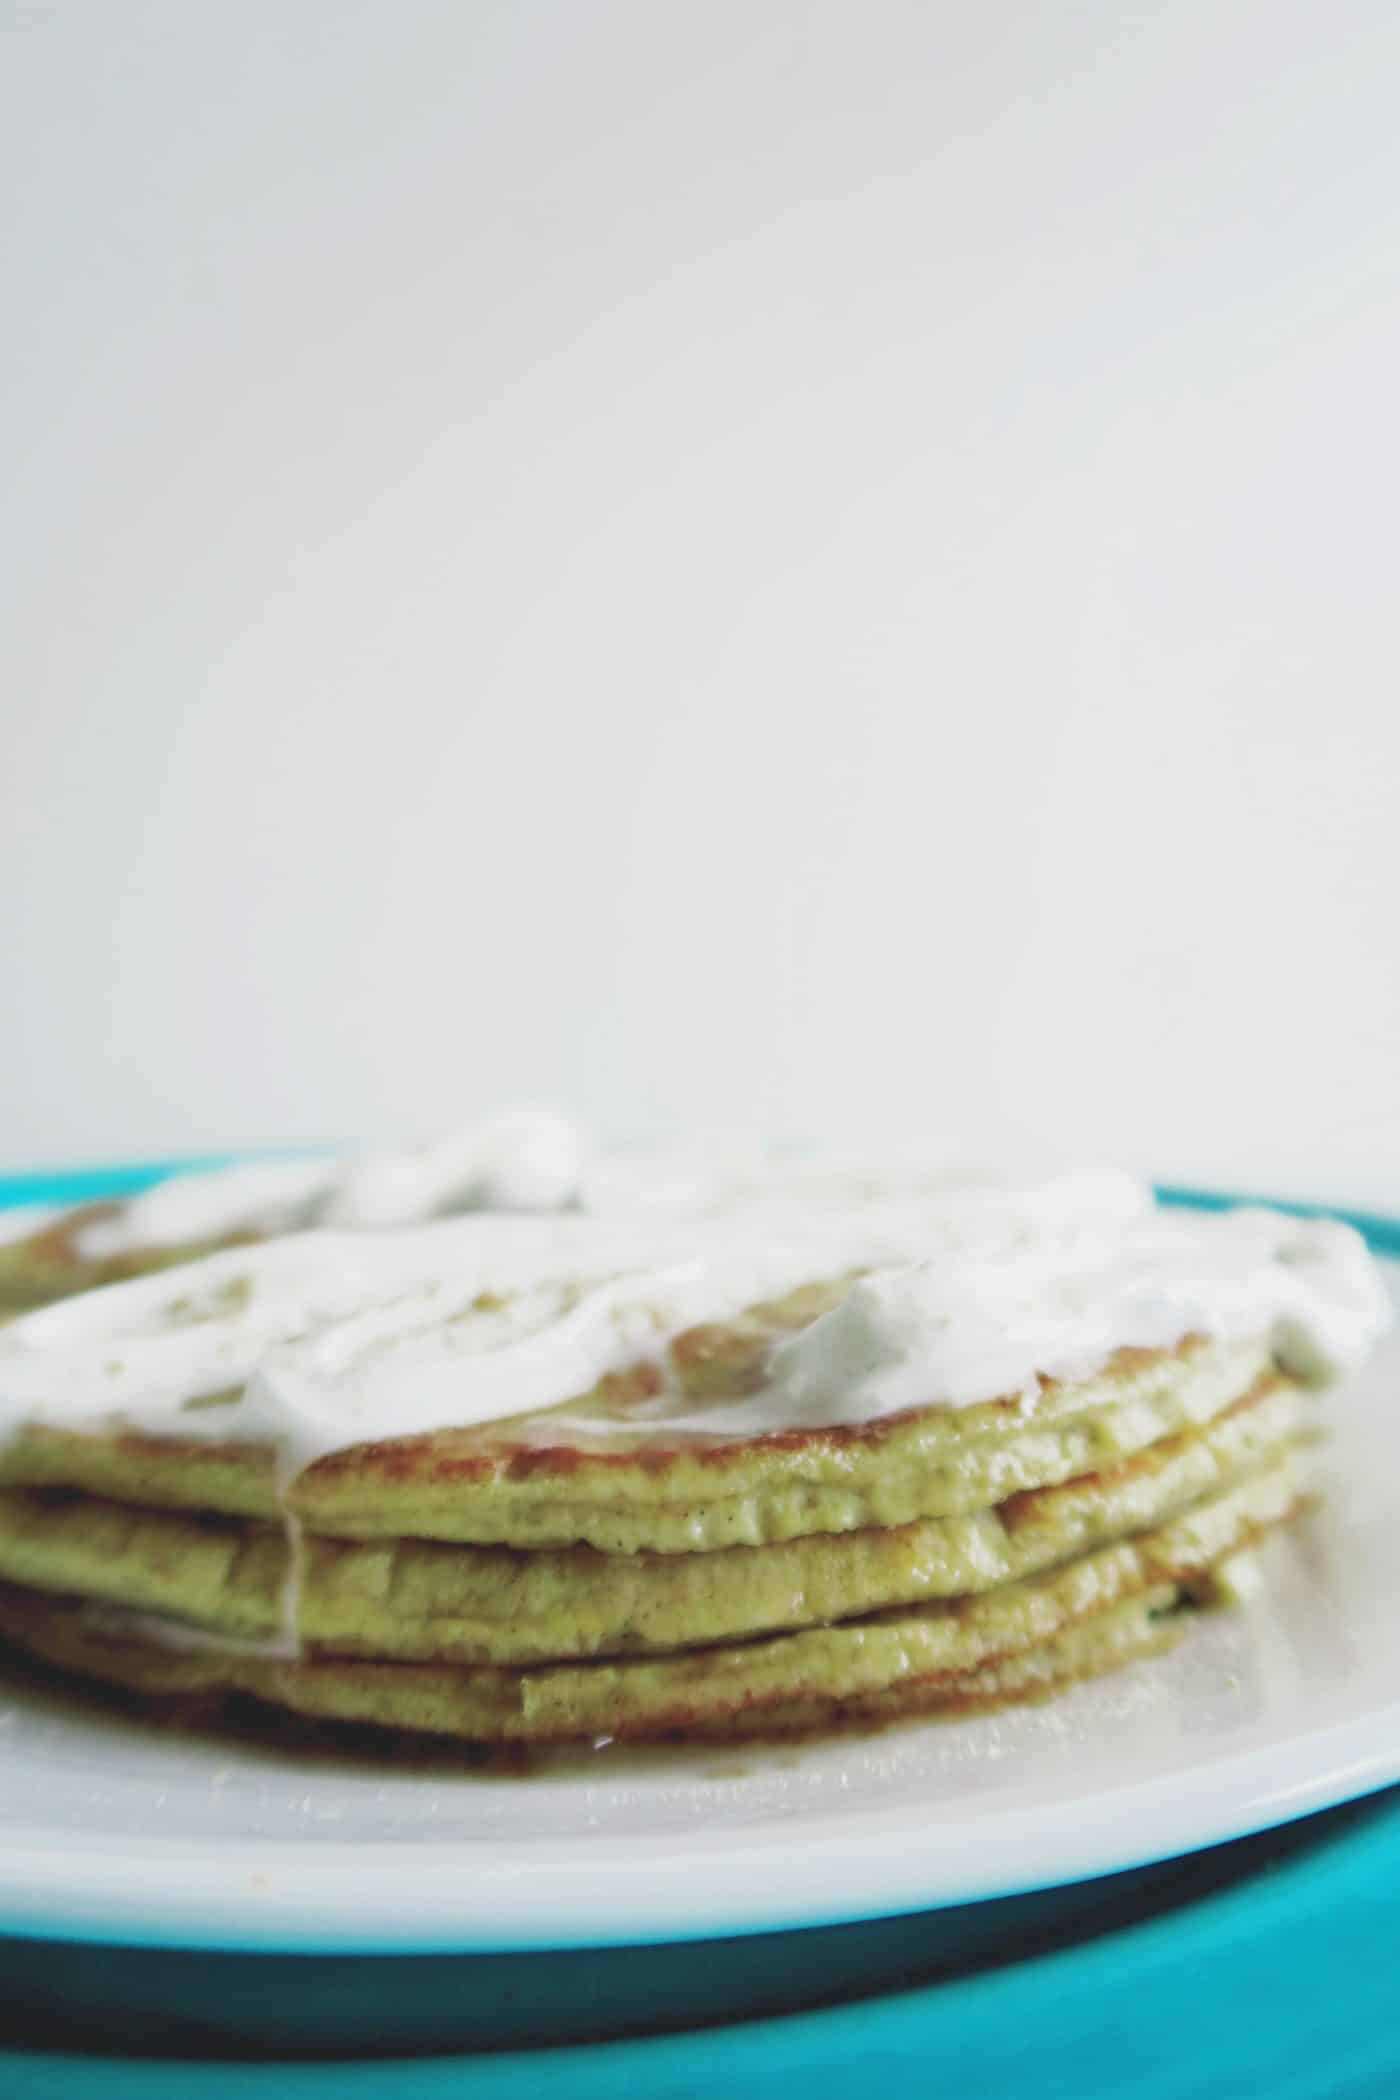 Bland breakfasts are boring. And weekday mornings go by waaaay too fast to really enjoy the meal as a family. So if you're looking for an easy weekend family breakfast, these cream cheese pancakes are a must!